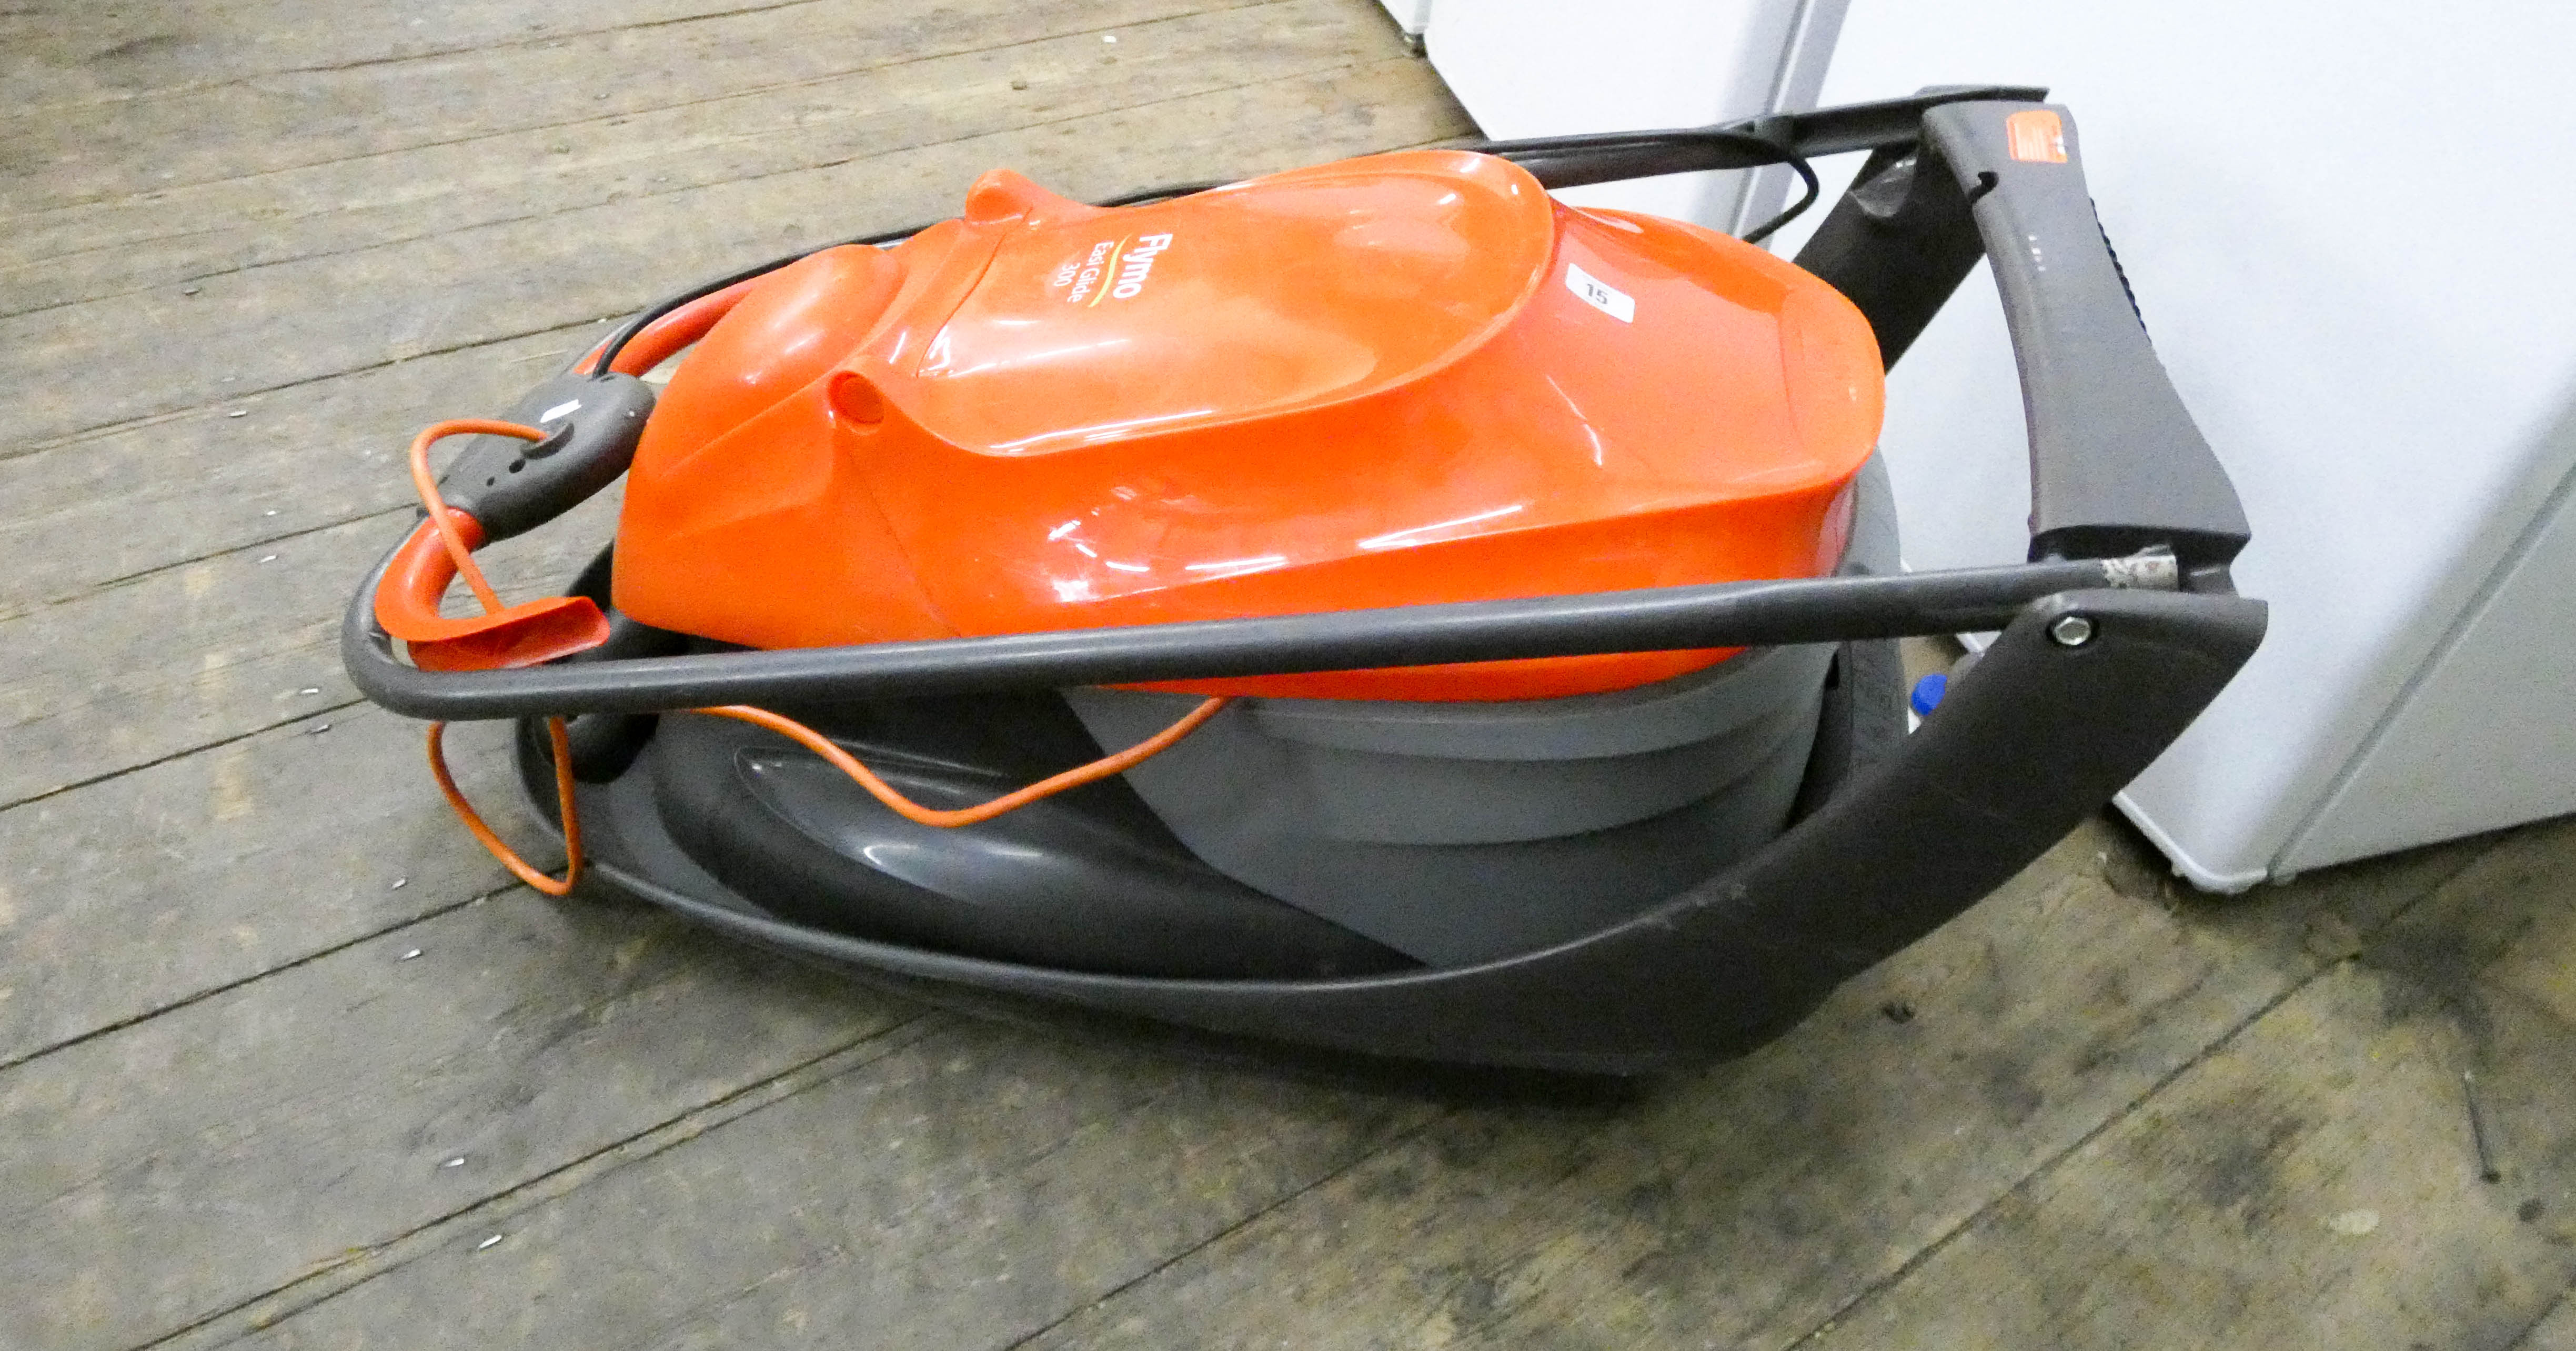 Lot 15 - A Flymo easi glide electric lawn mower